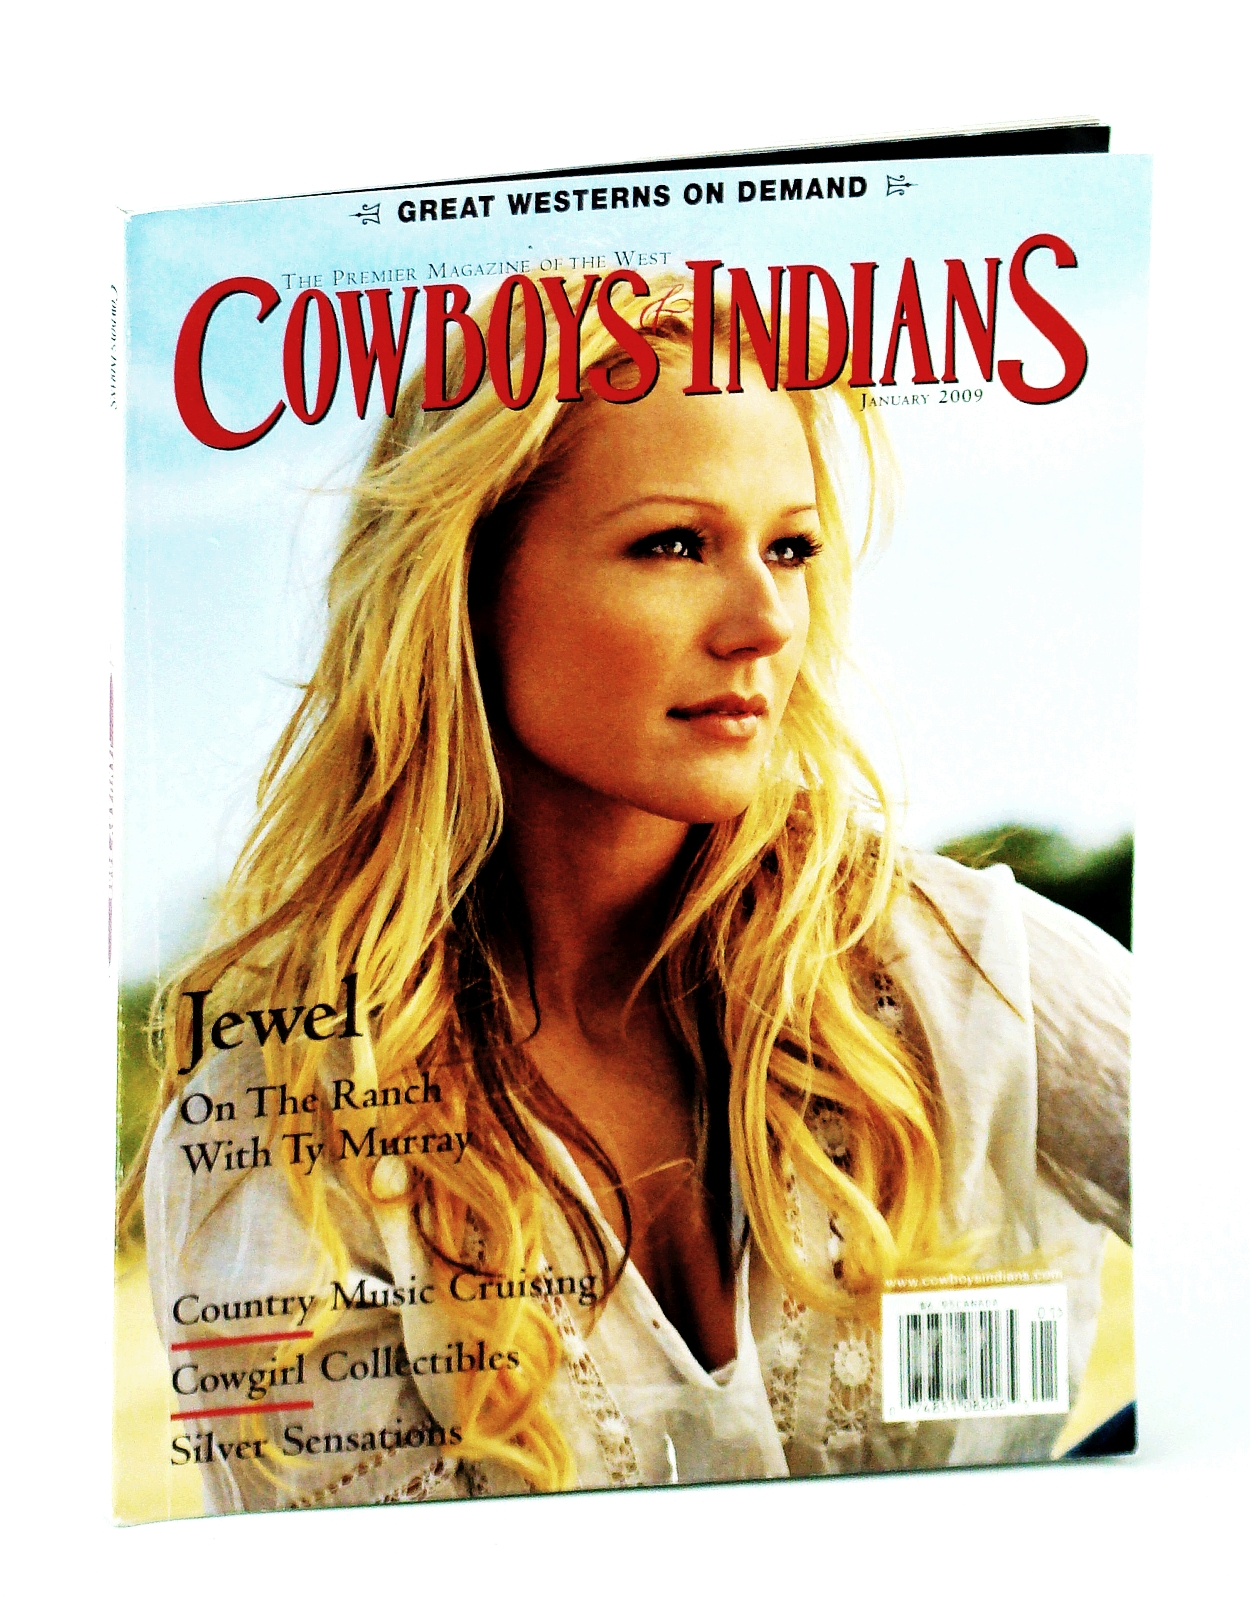 Image for Cowboys and Indians - The Premier Magazine of the West, January [Jan] 2009 - Jewel Cover Photo